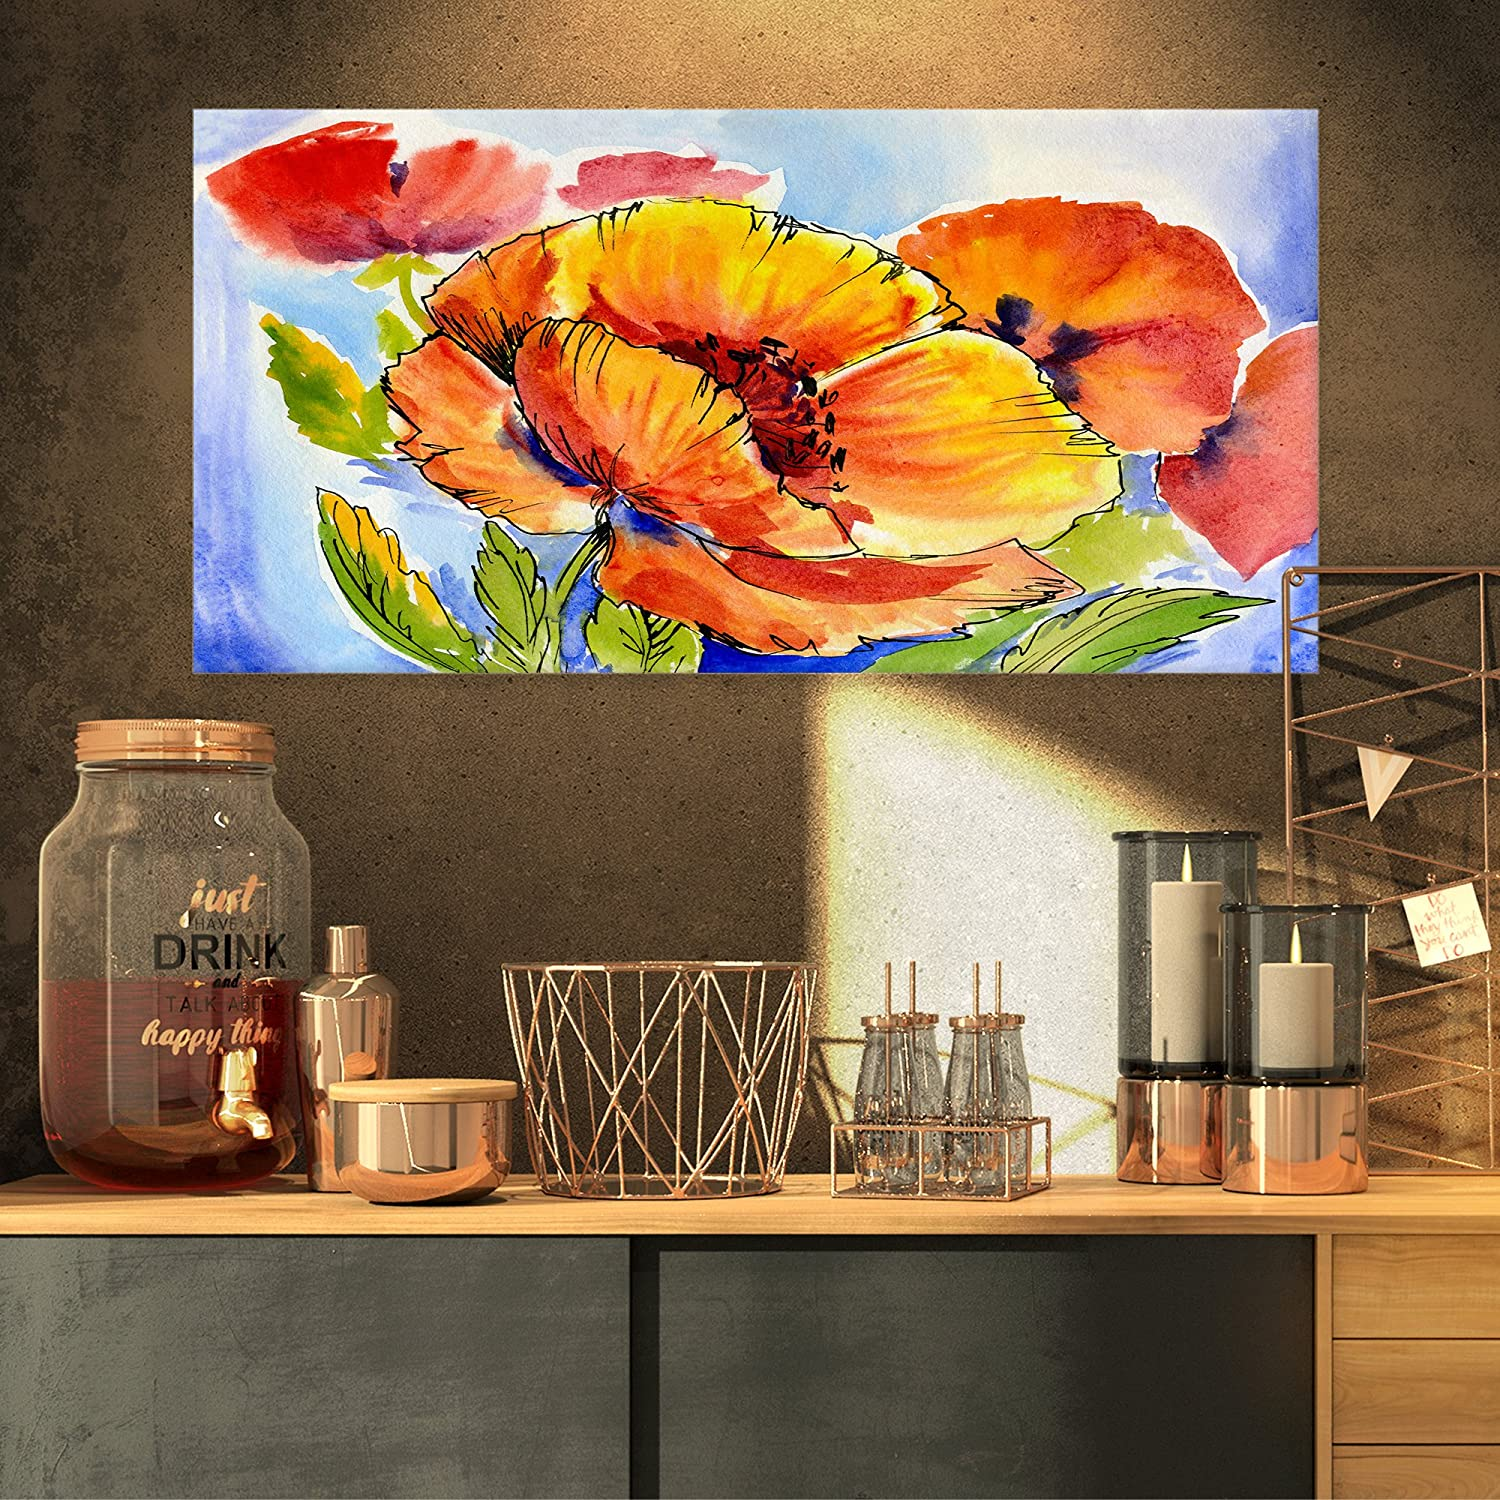 Bouquet of Full Blown Poppies Floral on Canvas Art Wall Photgraphy Artwork Print Designart PT6243-32-16